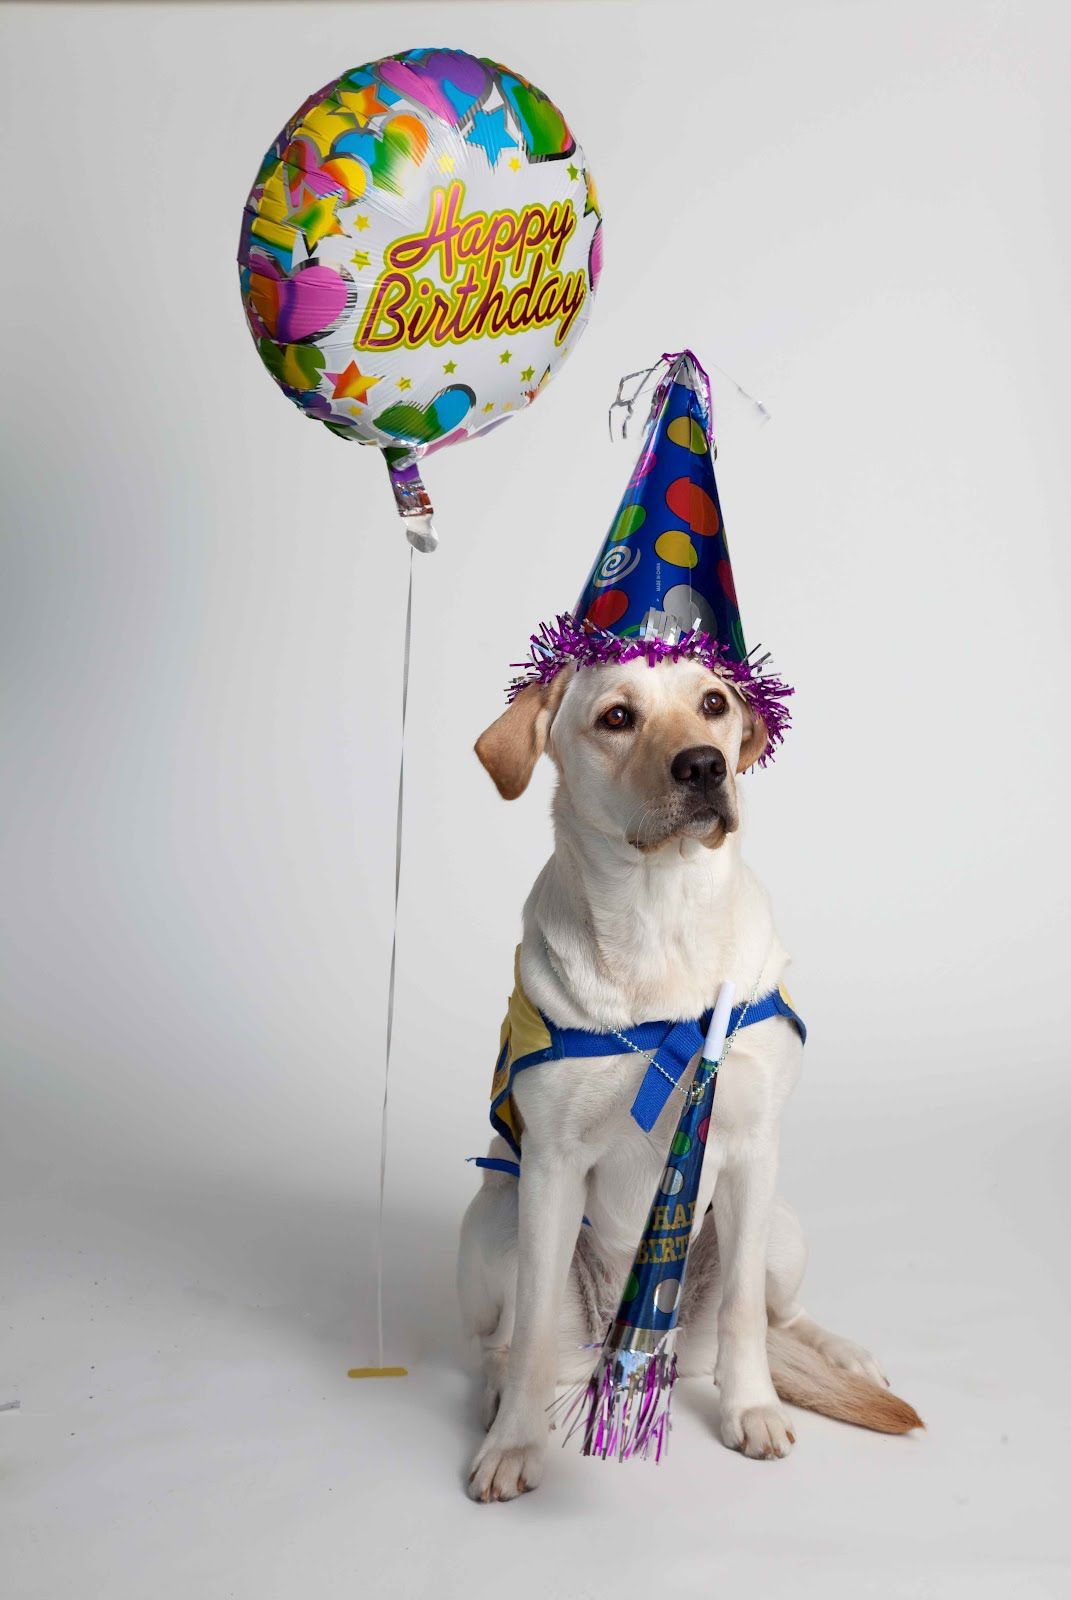 happy birthday dog image - Google Search | Yappy Barkday ... - photo#43